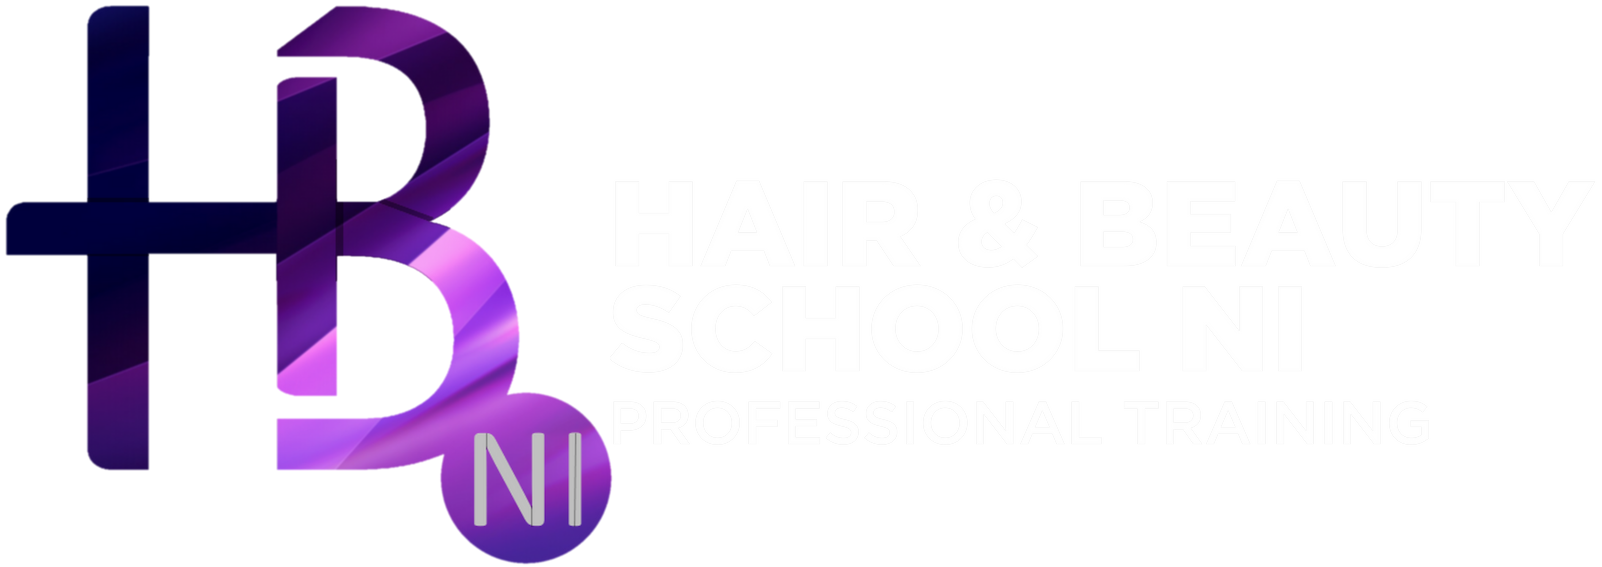 Hair and Beauty School NI